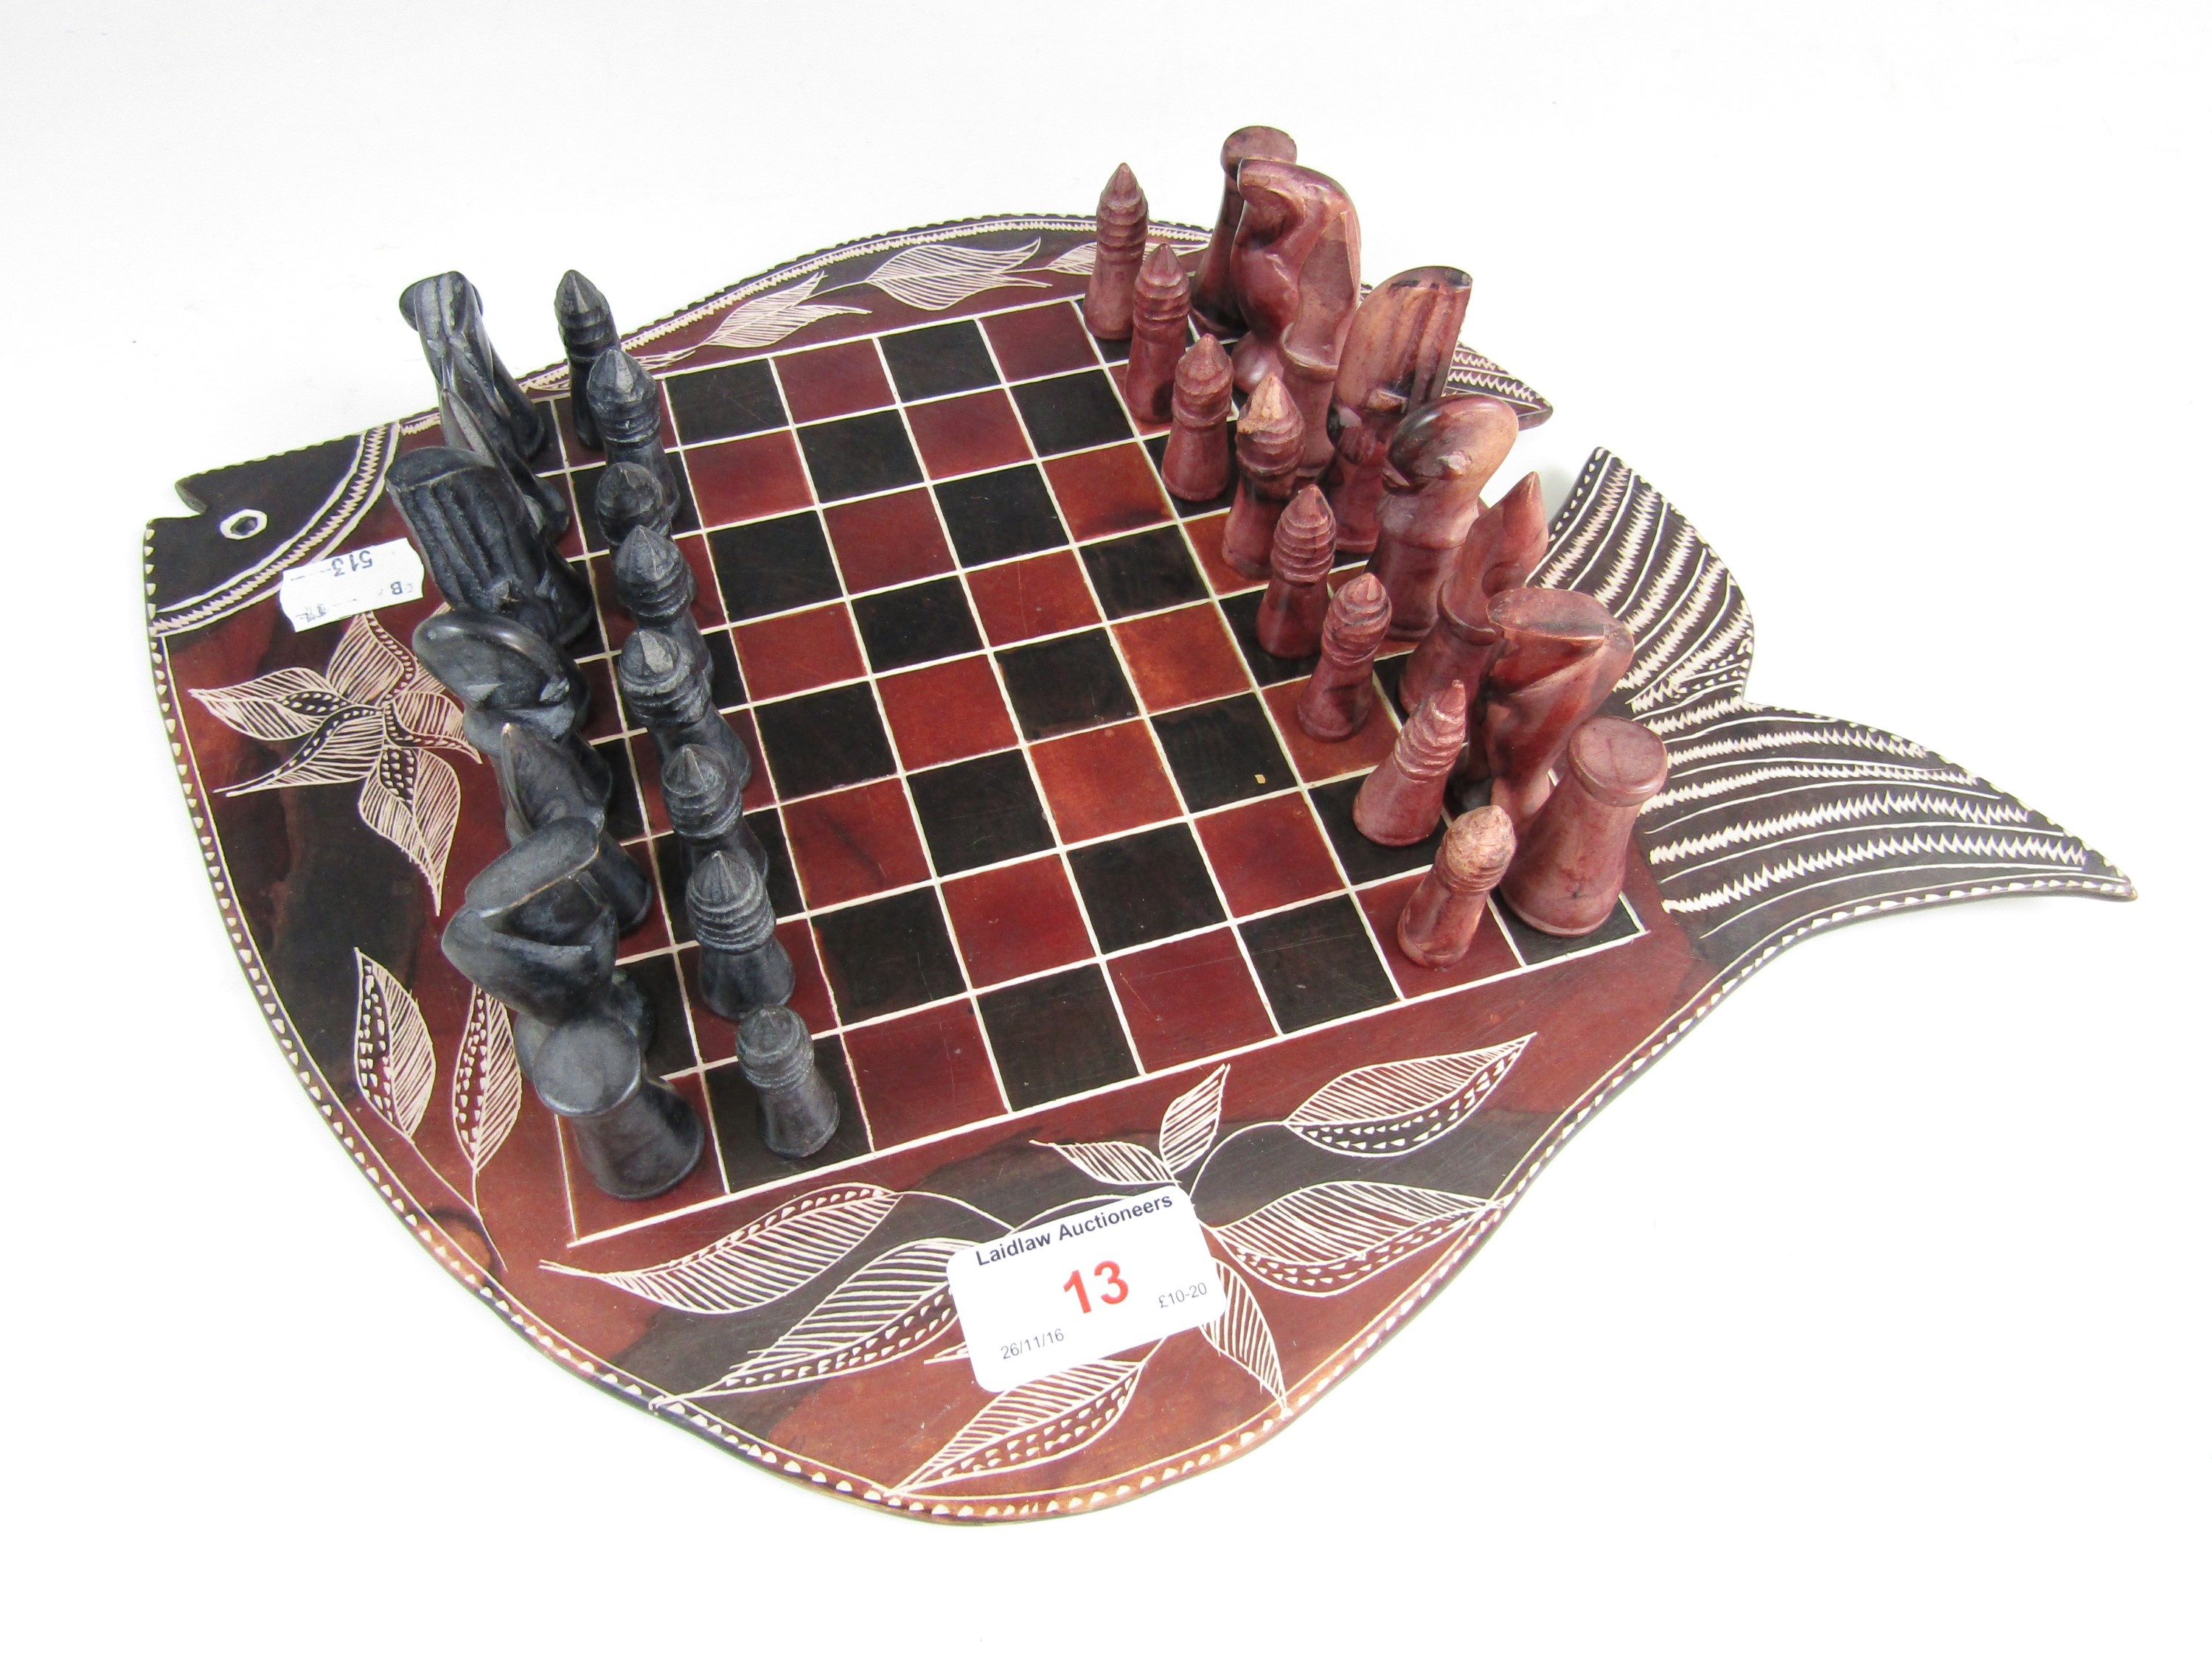 Lot 13 - A soapstone chess board and pieces